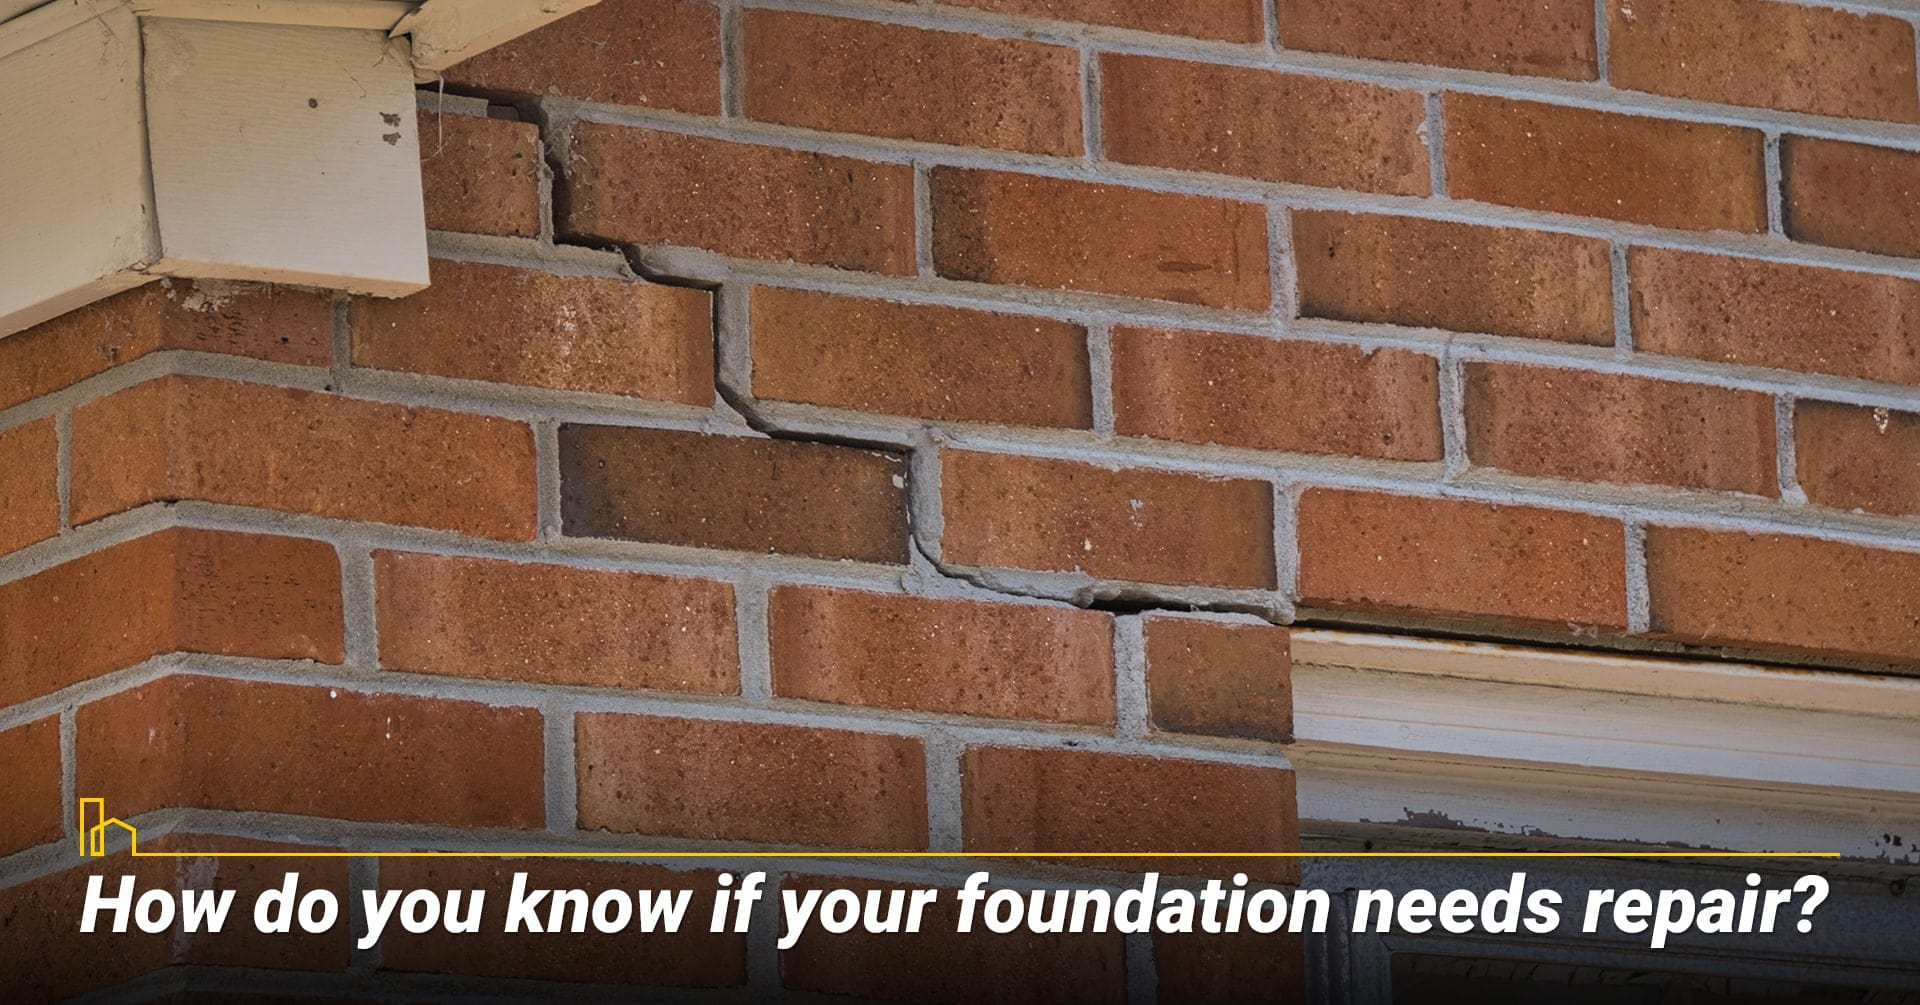 How do you know if your foundation needs repair? Signs that foundation needs repair